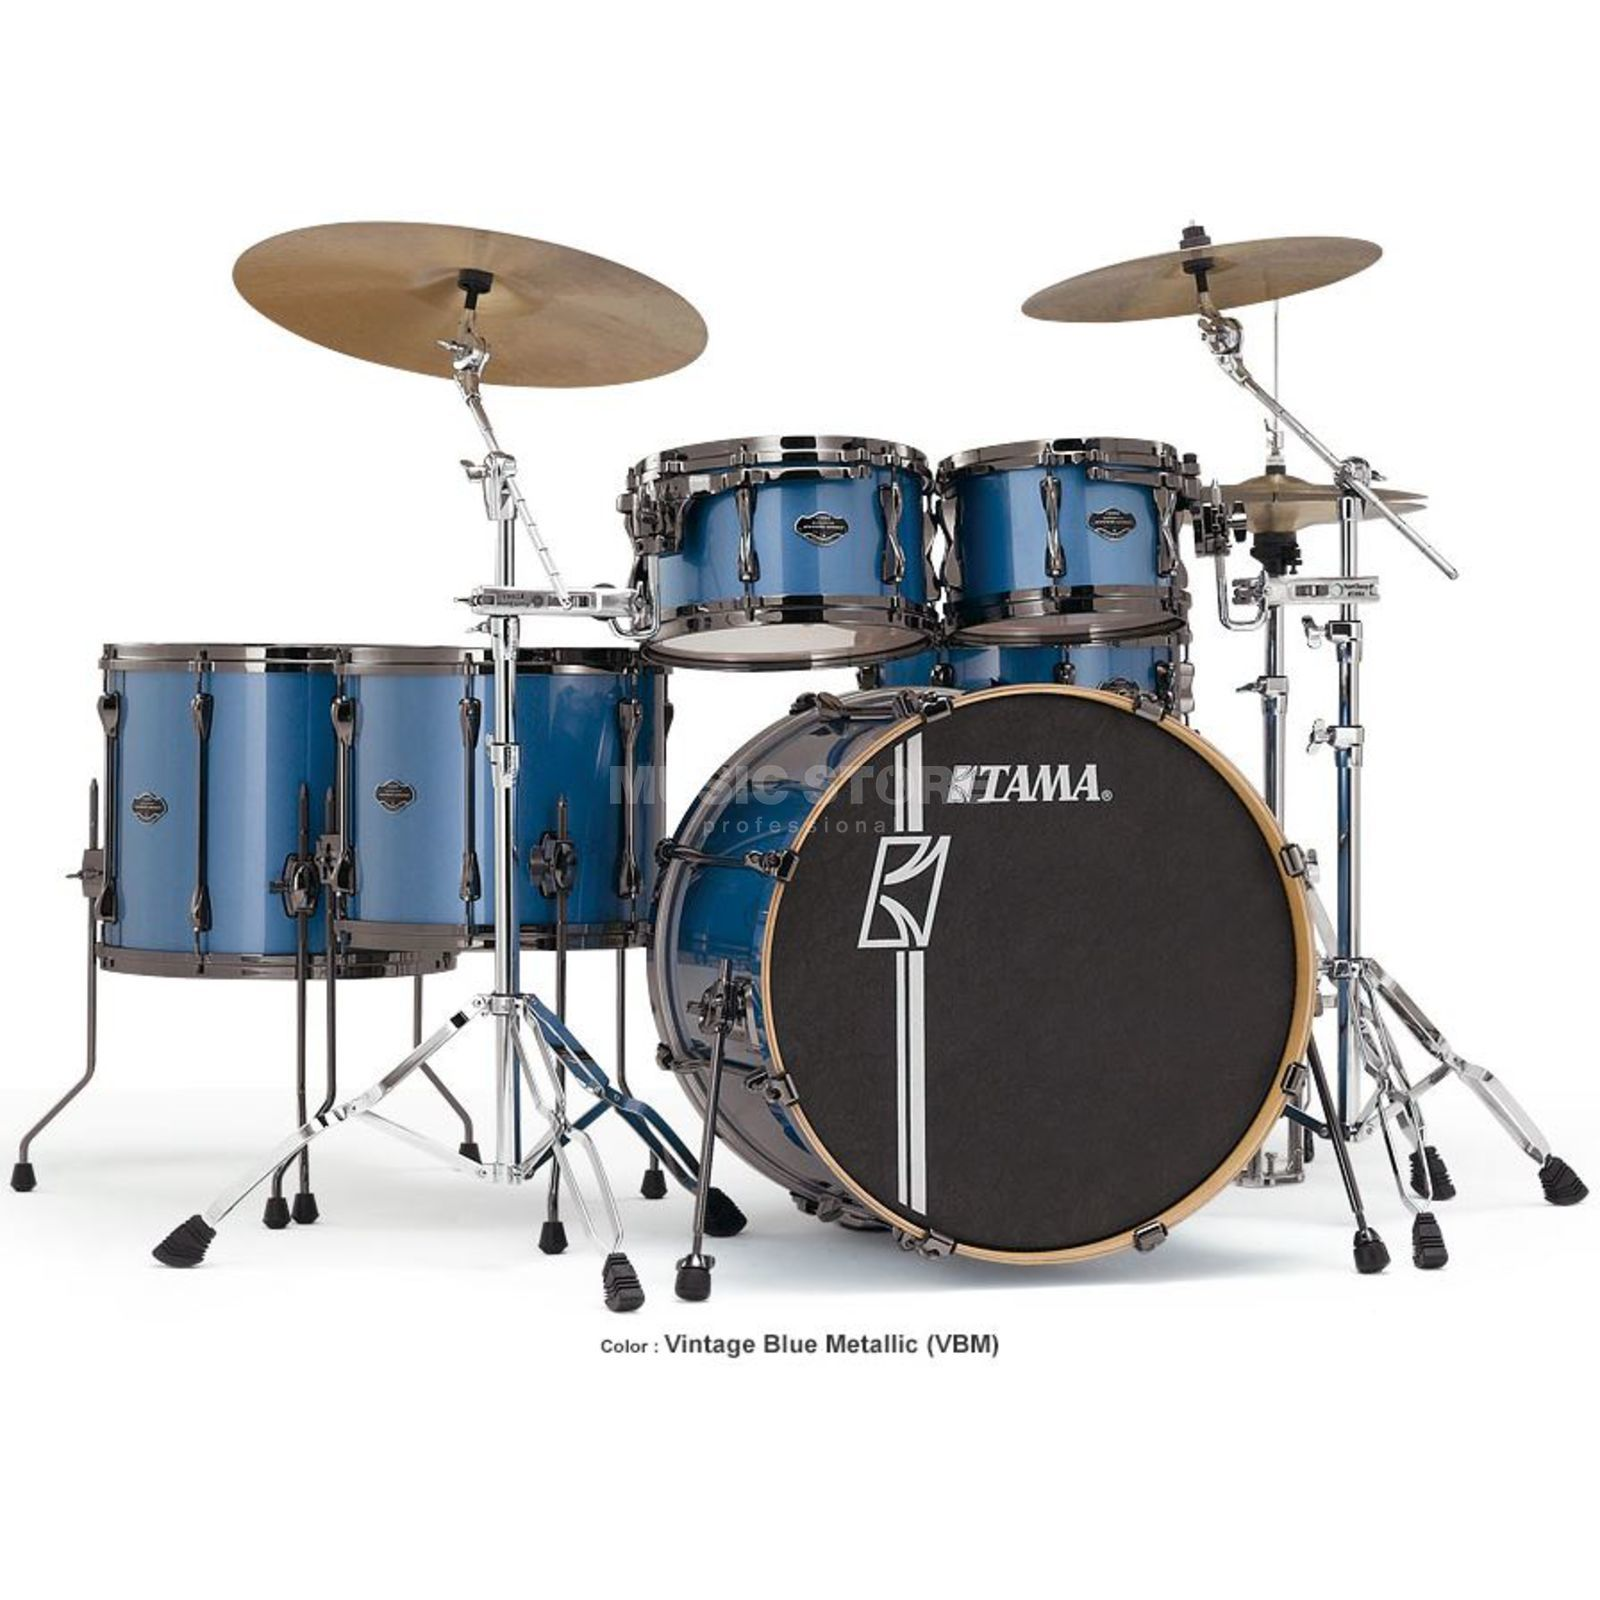 Tama Superstar HD Maple ML52HZBN, Vintage Blue Metallic, VBM Zdjęcie produktu